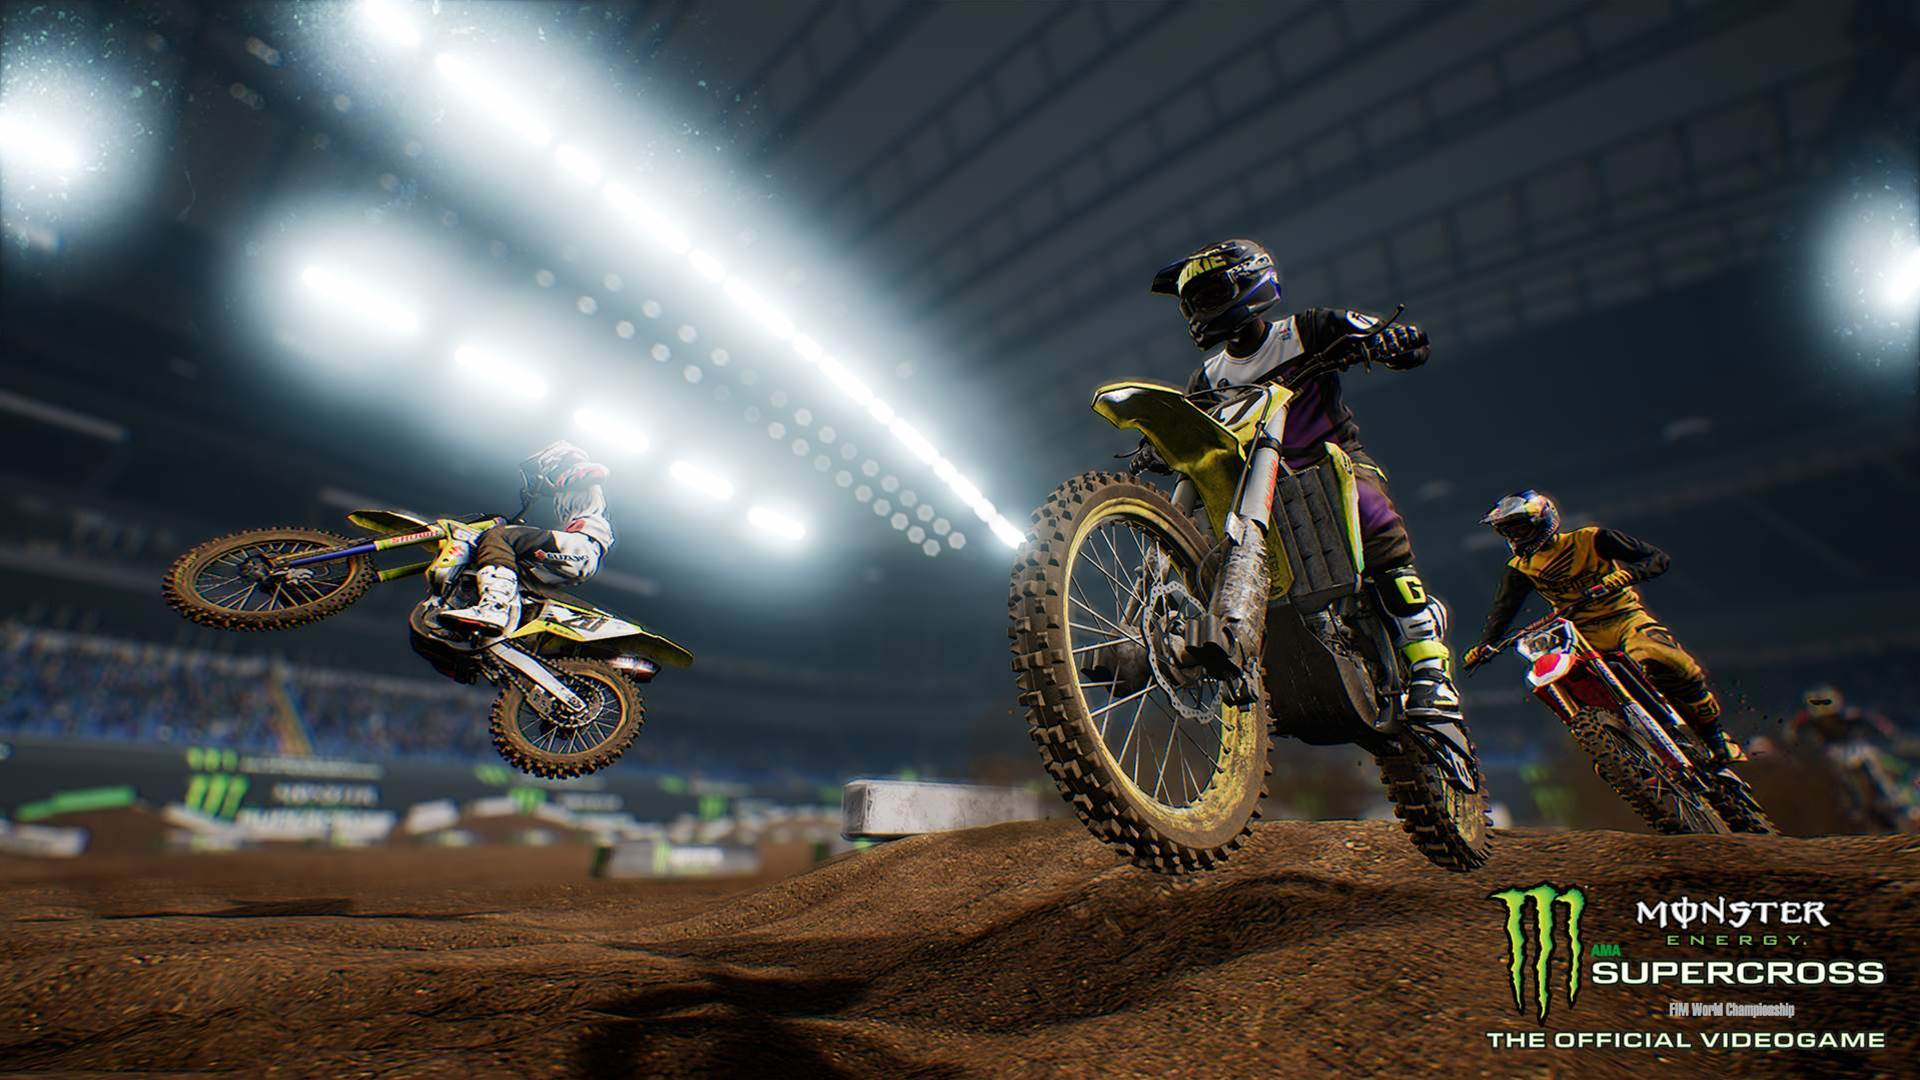 On ya bike for these Monster Energy Supercross - The Official Videogame screens